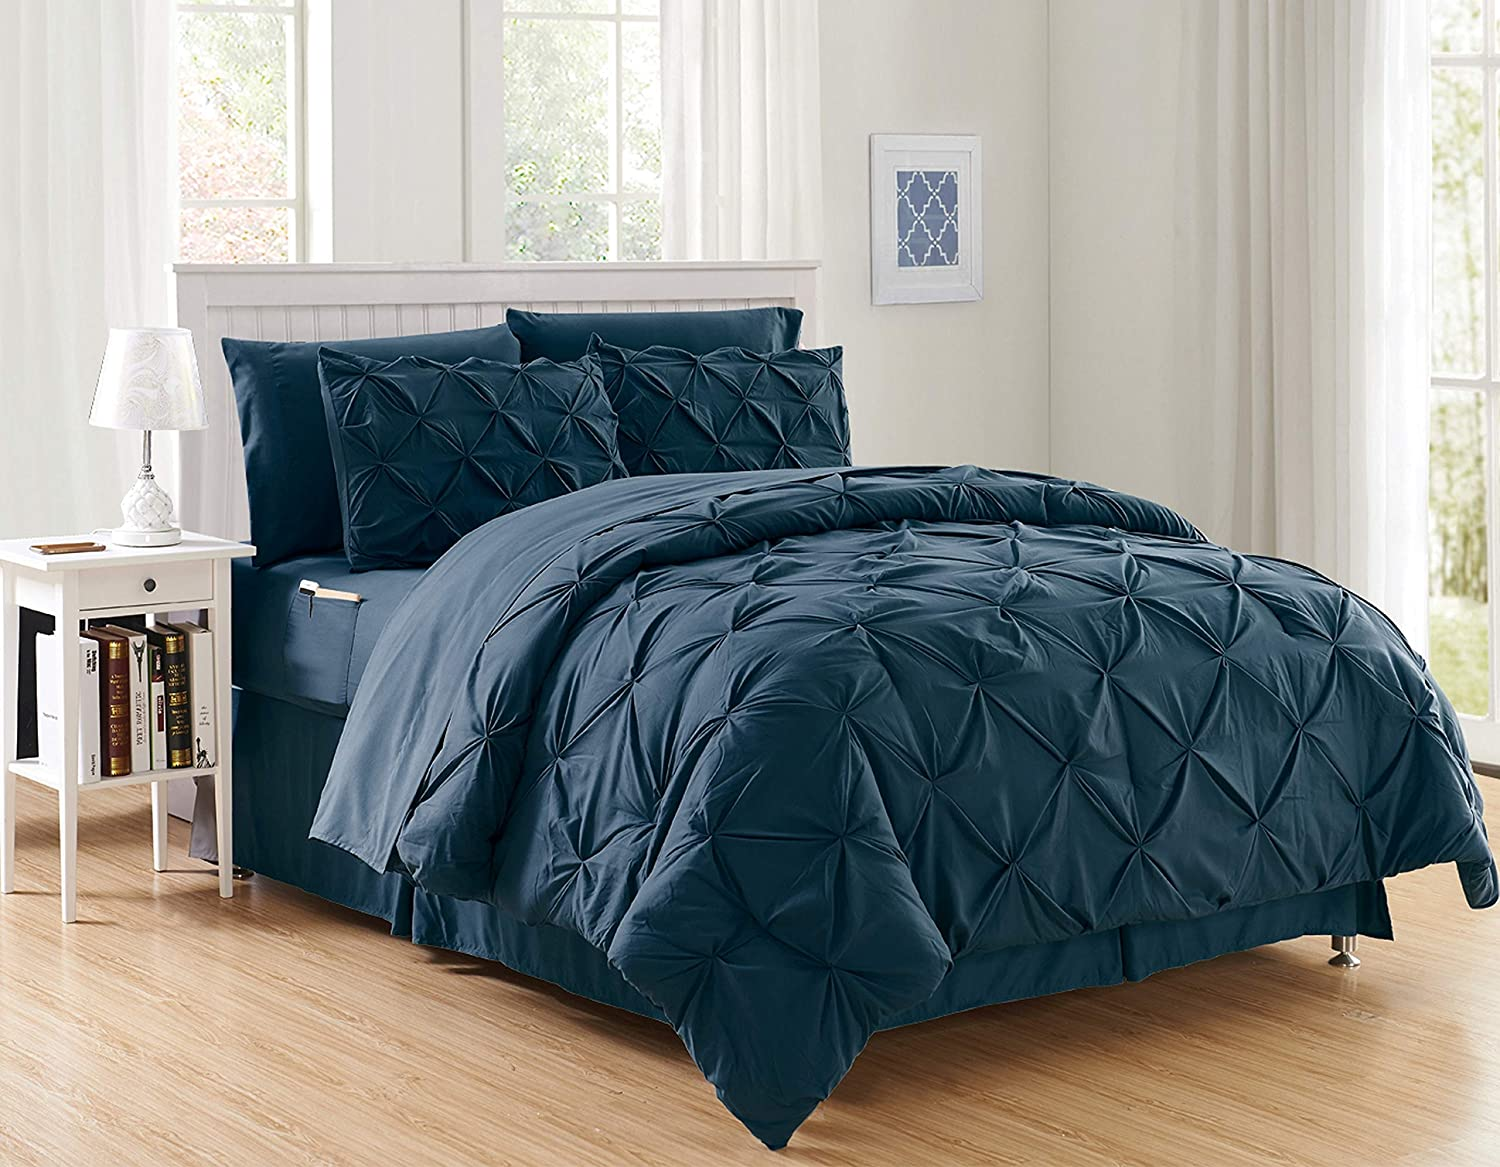 Luxury Best, Softest, Coziest 8-Piece Bed-in-a-Bag Comforter Set on ! Elegant Comfort - Silky Soft Complete Set Includes Bed Sheet Set with Double Sided Storage Pockets, King/Cal King, Navy : Home & Kitchen